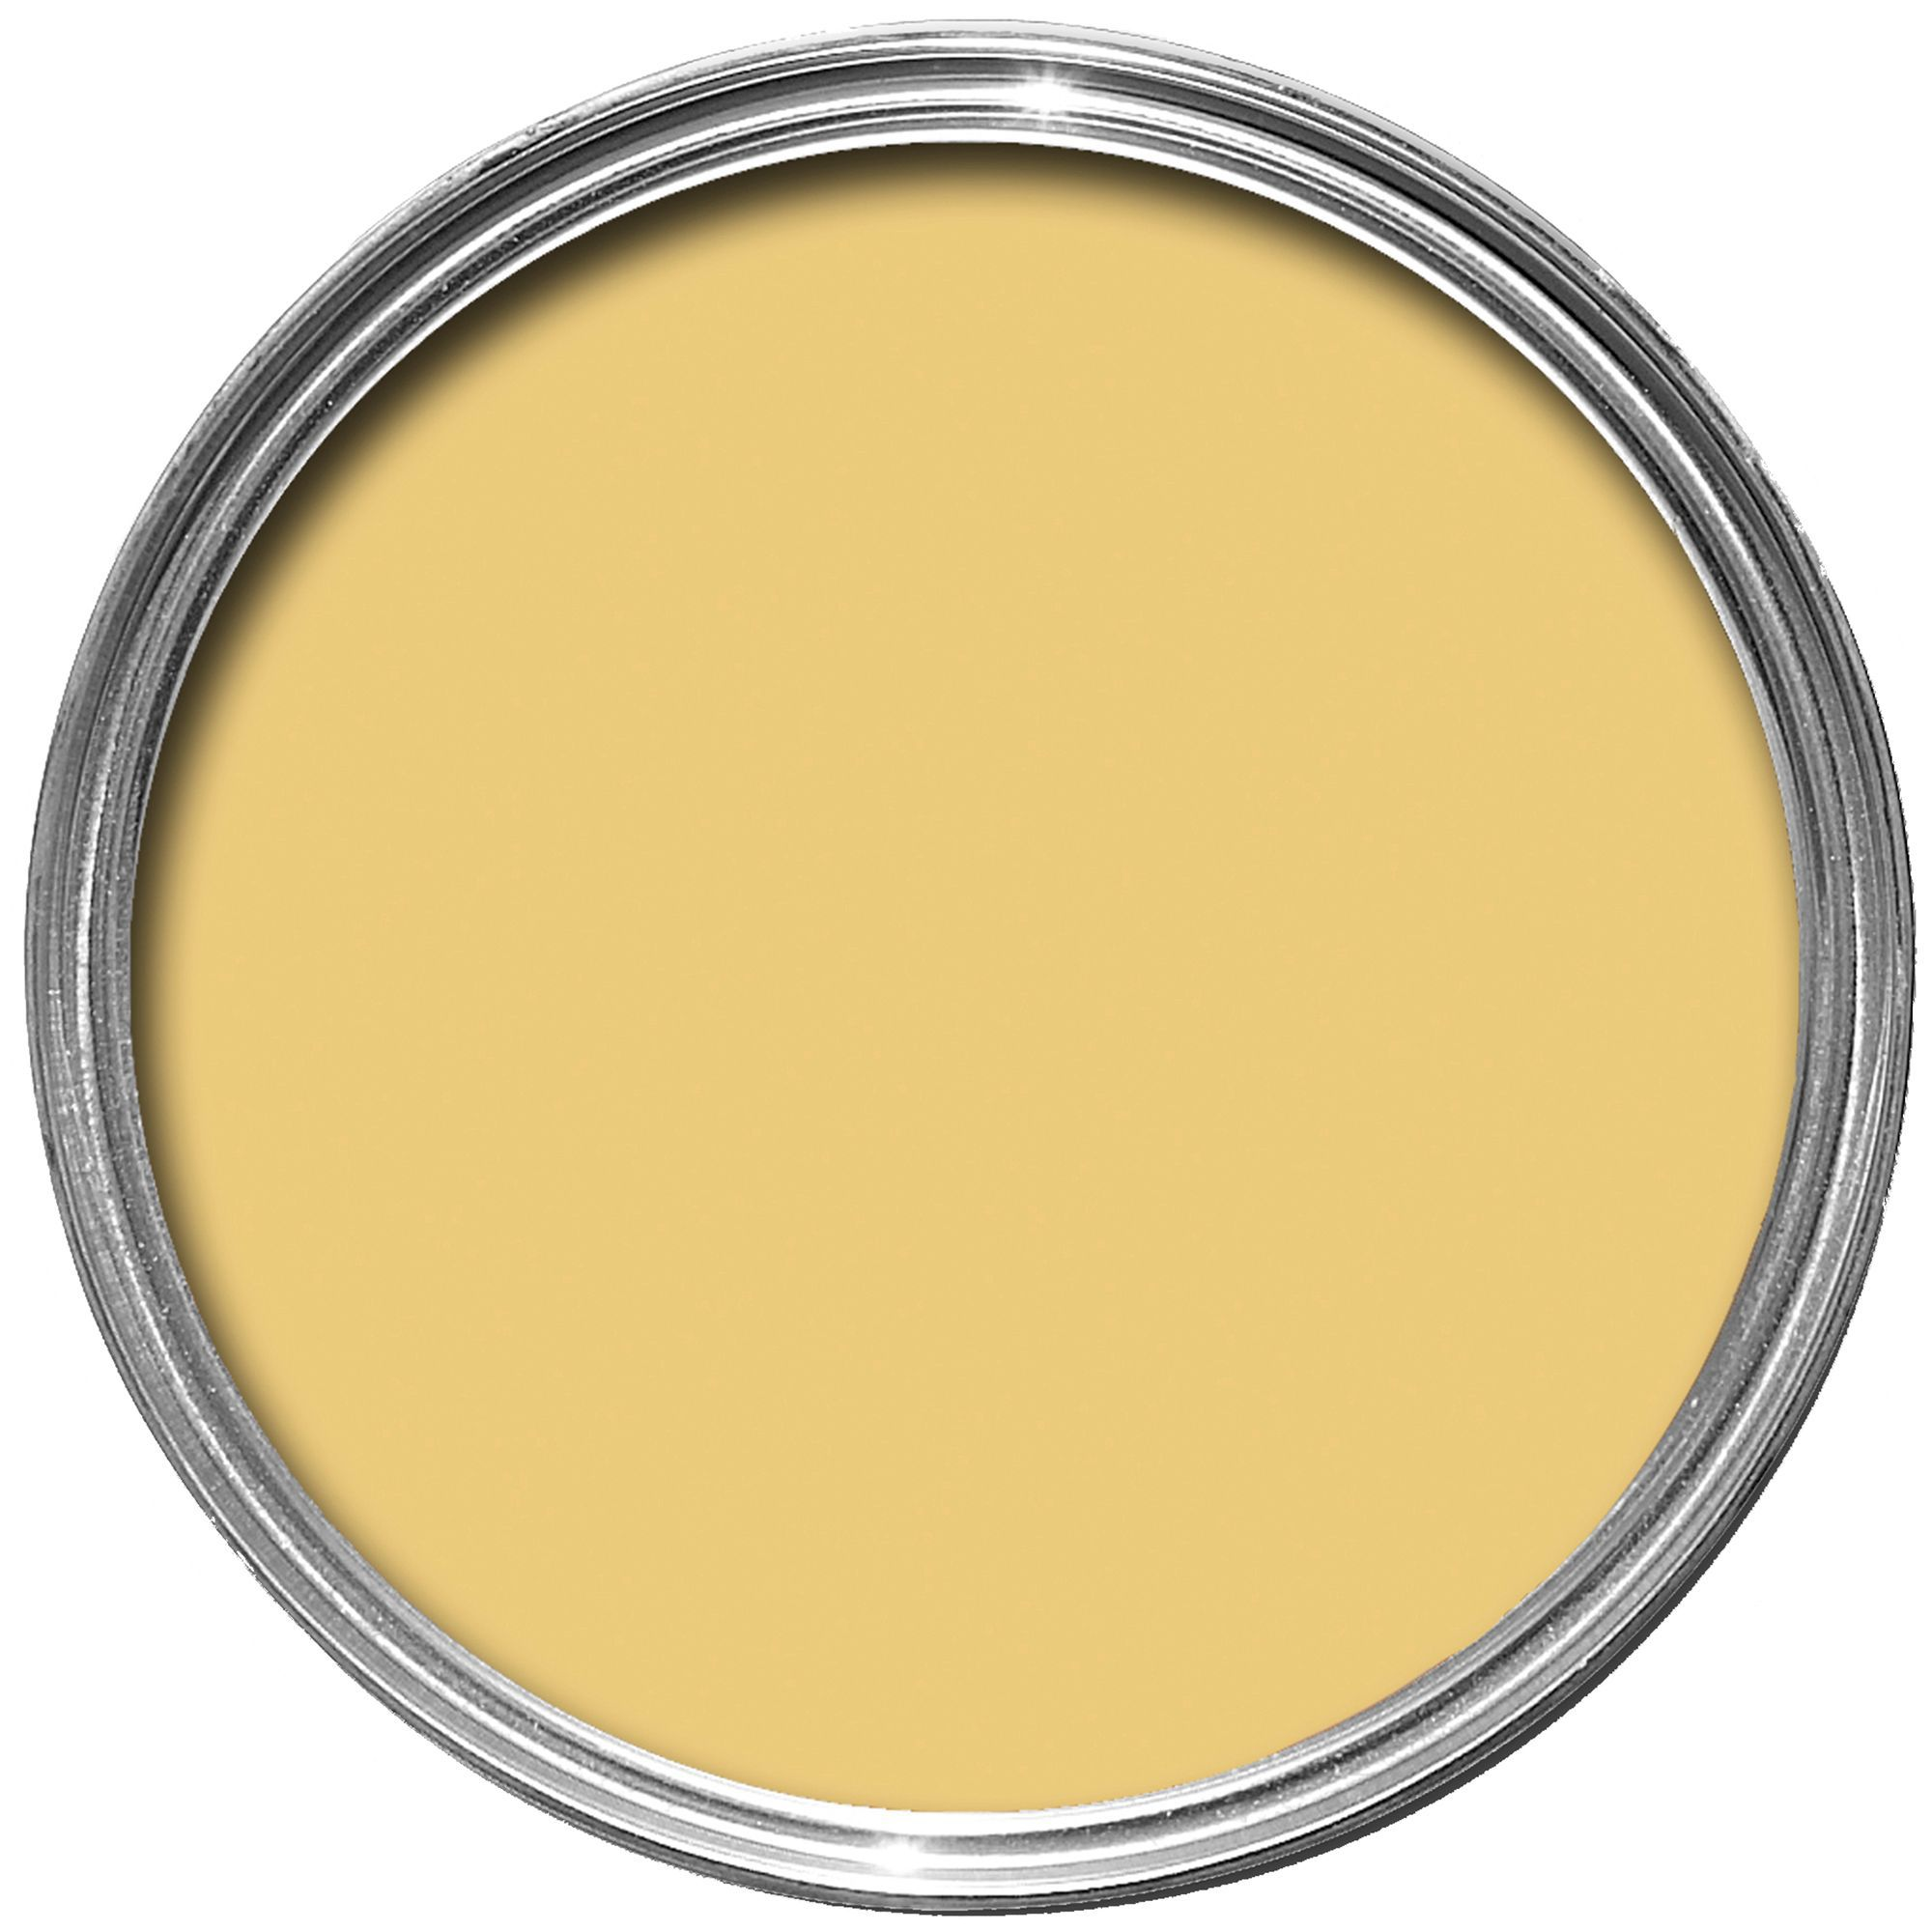 Colours one coat interior exterior summer satin wood metal paint 750ml departments diy - Exterior wood paint colours uk concept ...